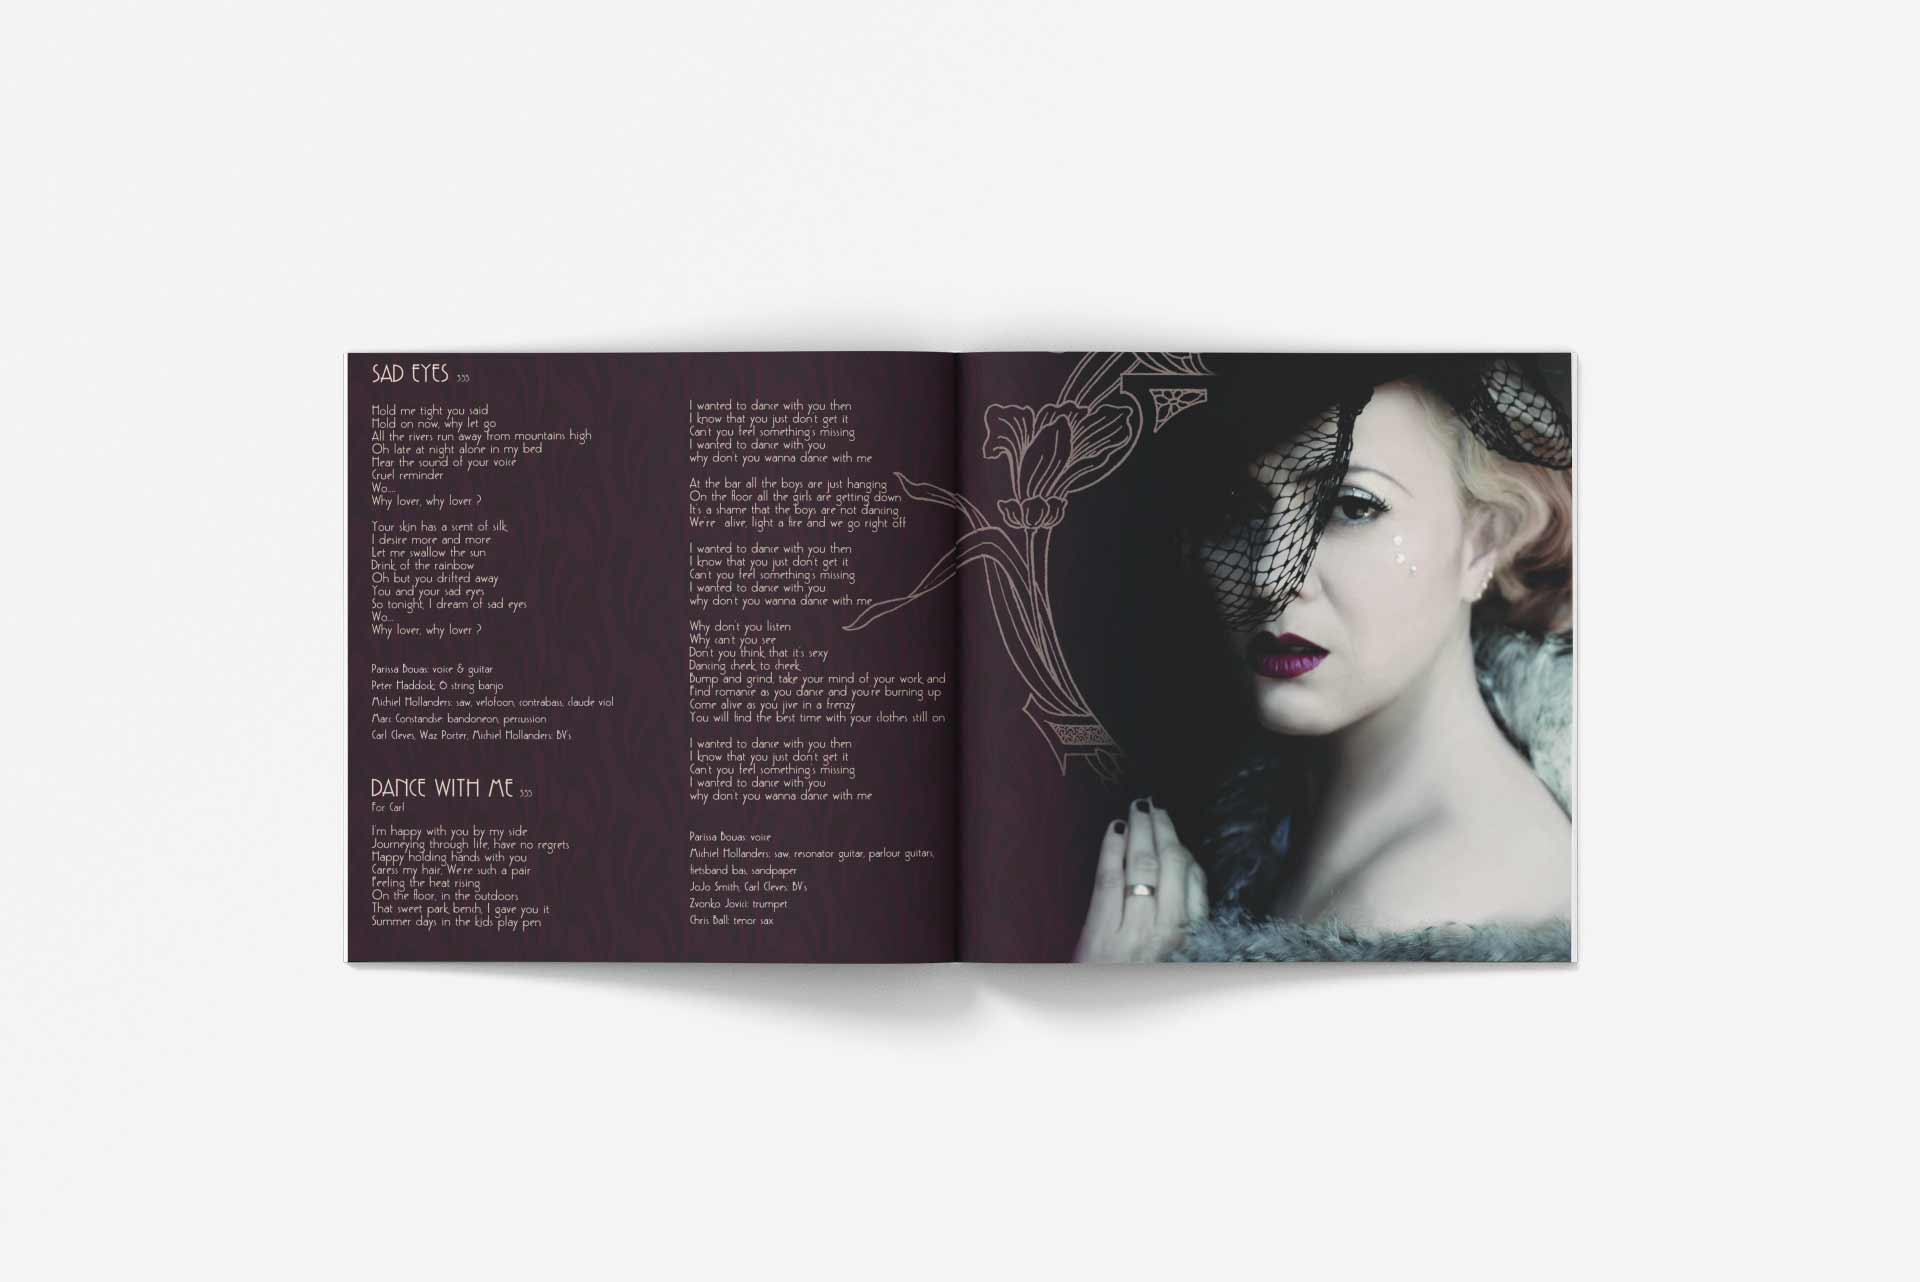 Parrisa Bouas Cd Inside Booklet Music Graphic Design By Mango Tree Media